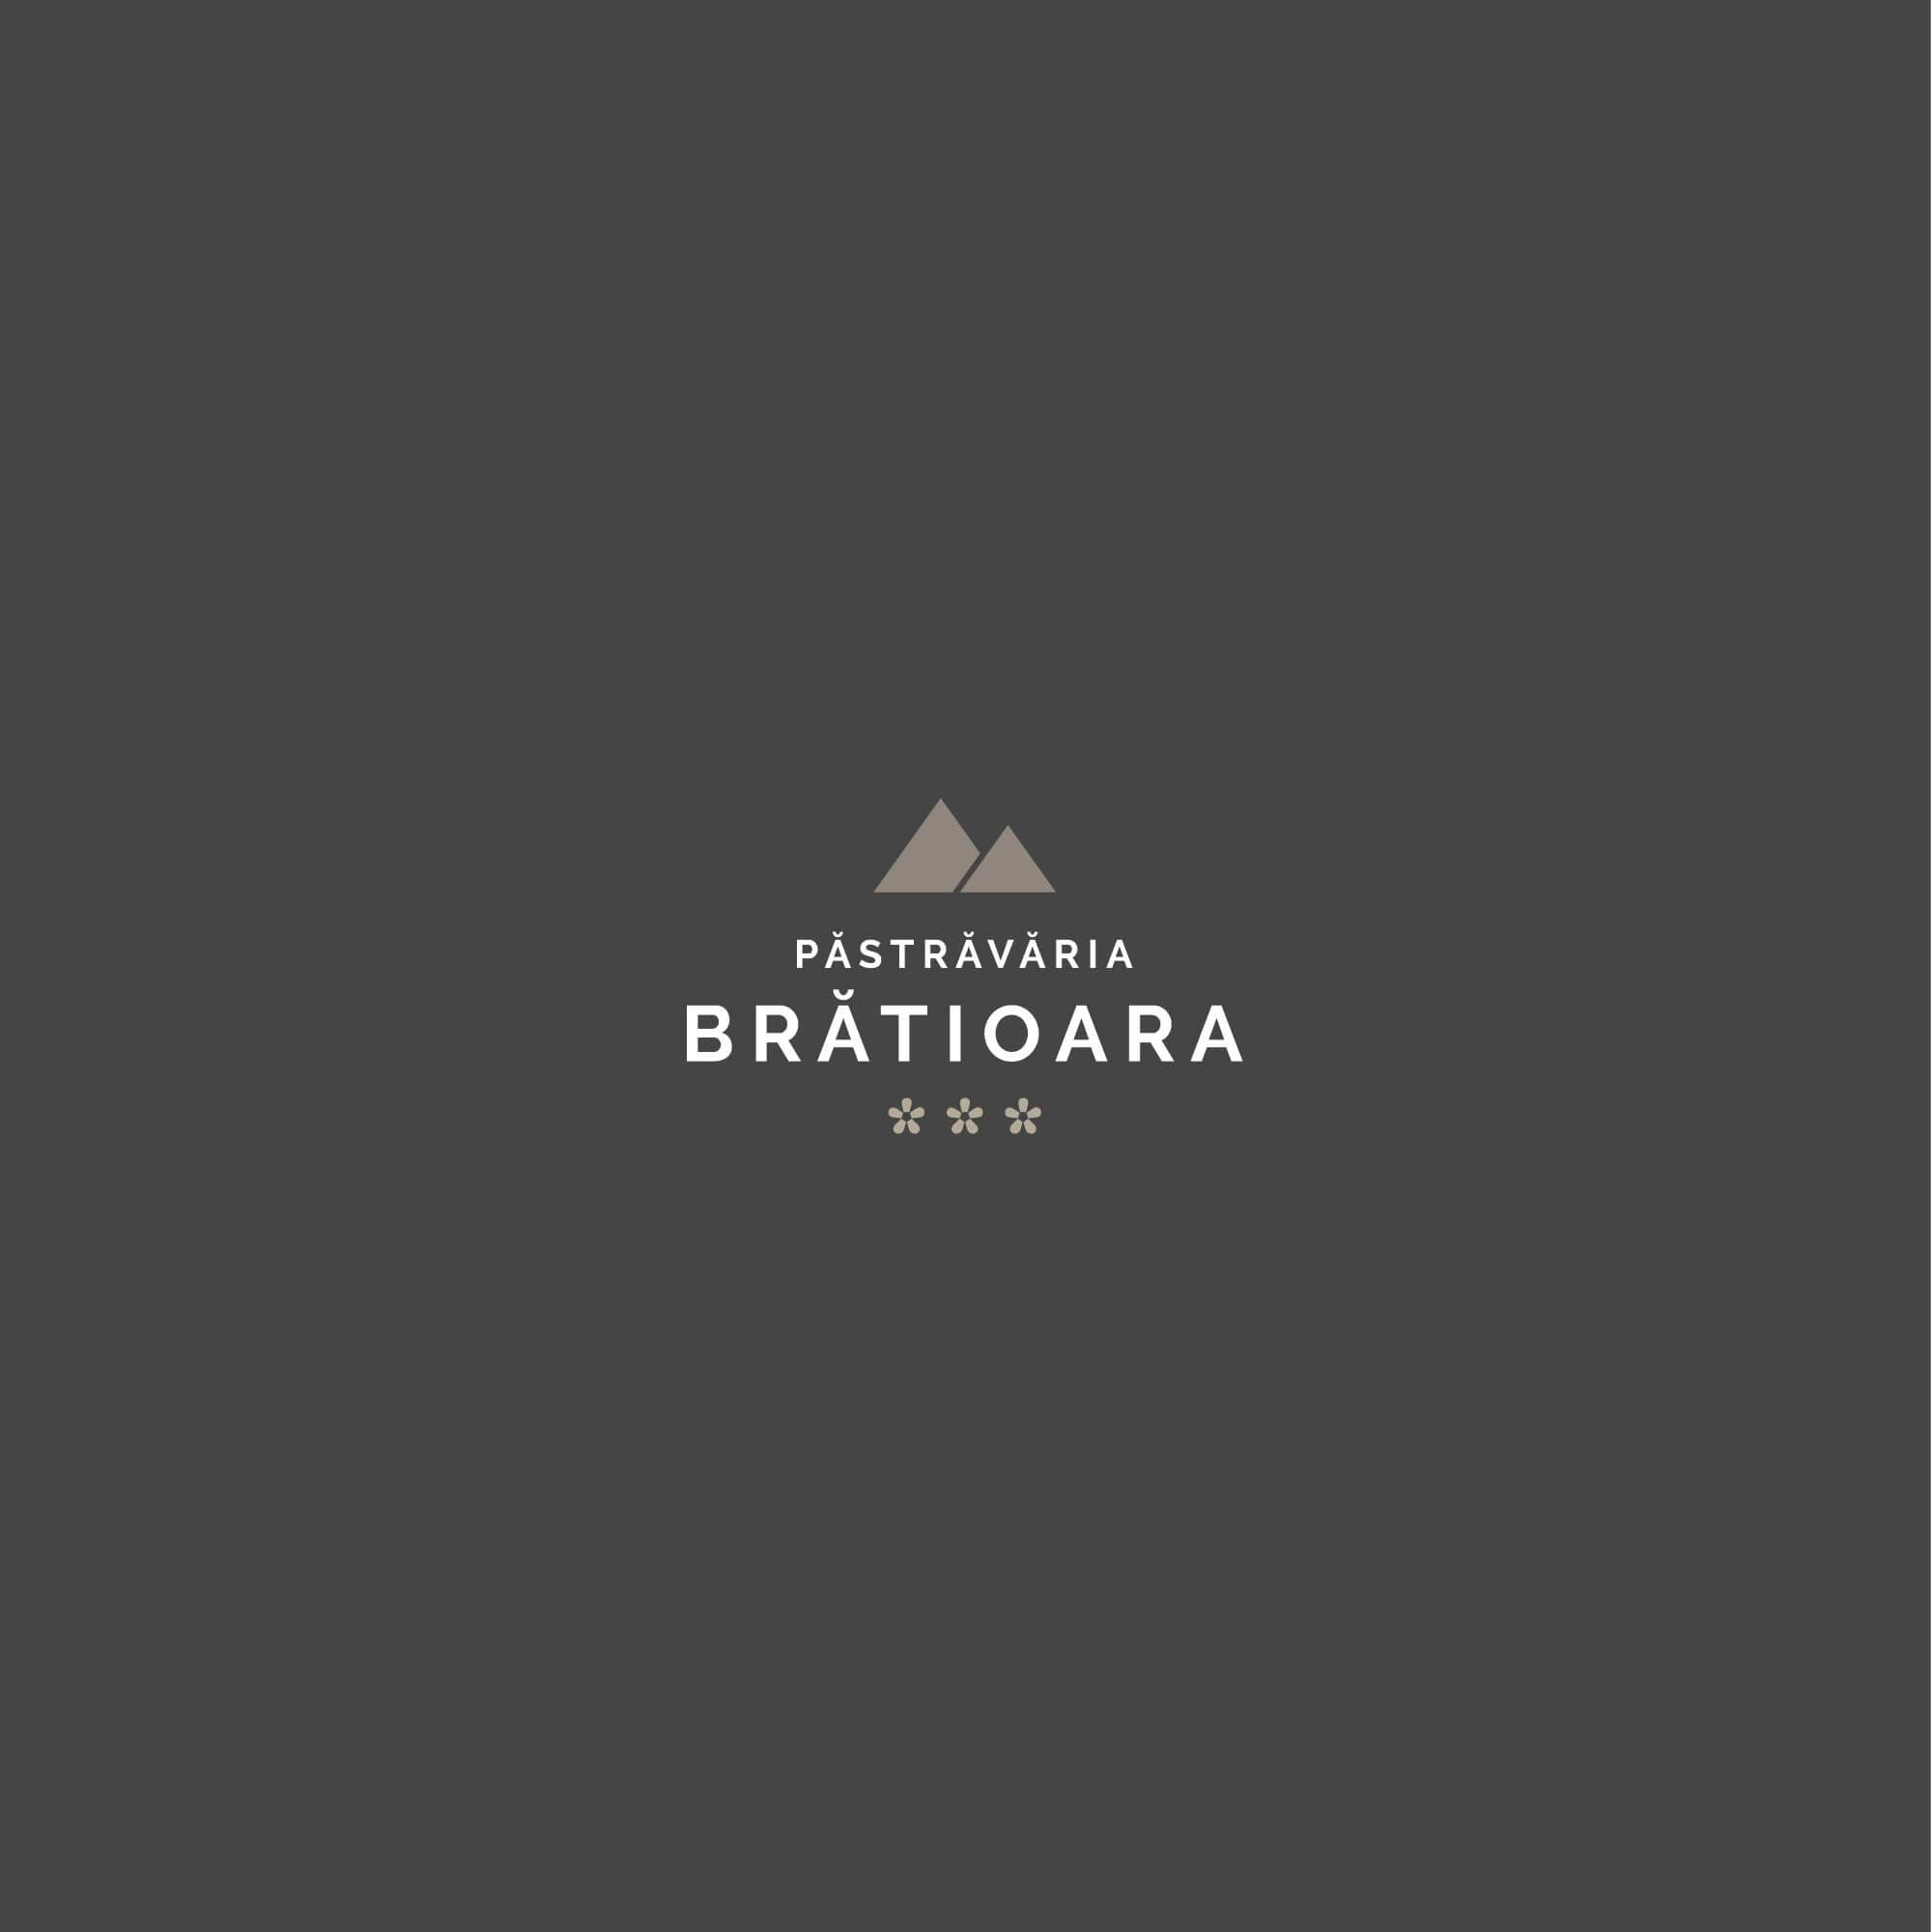 Logo Pastravaria Bratioara, trout farm in the mountains, a relaxing place with amazing scenery.